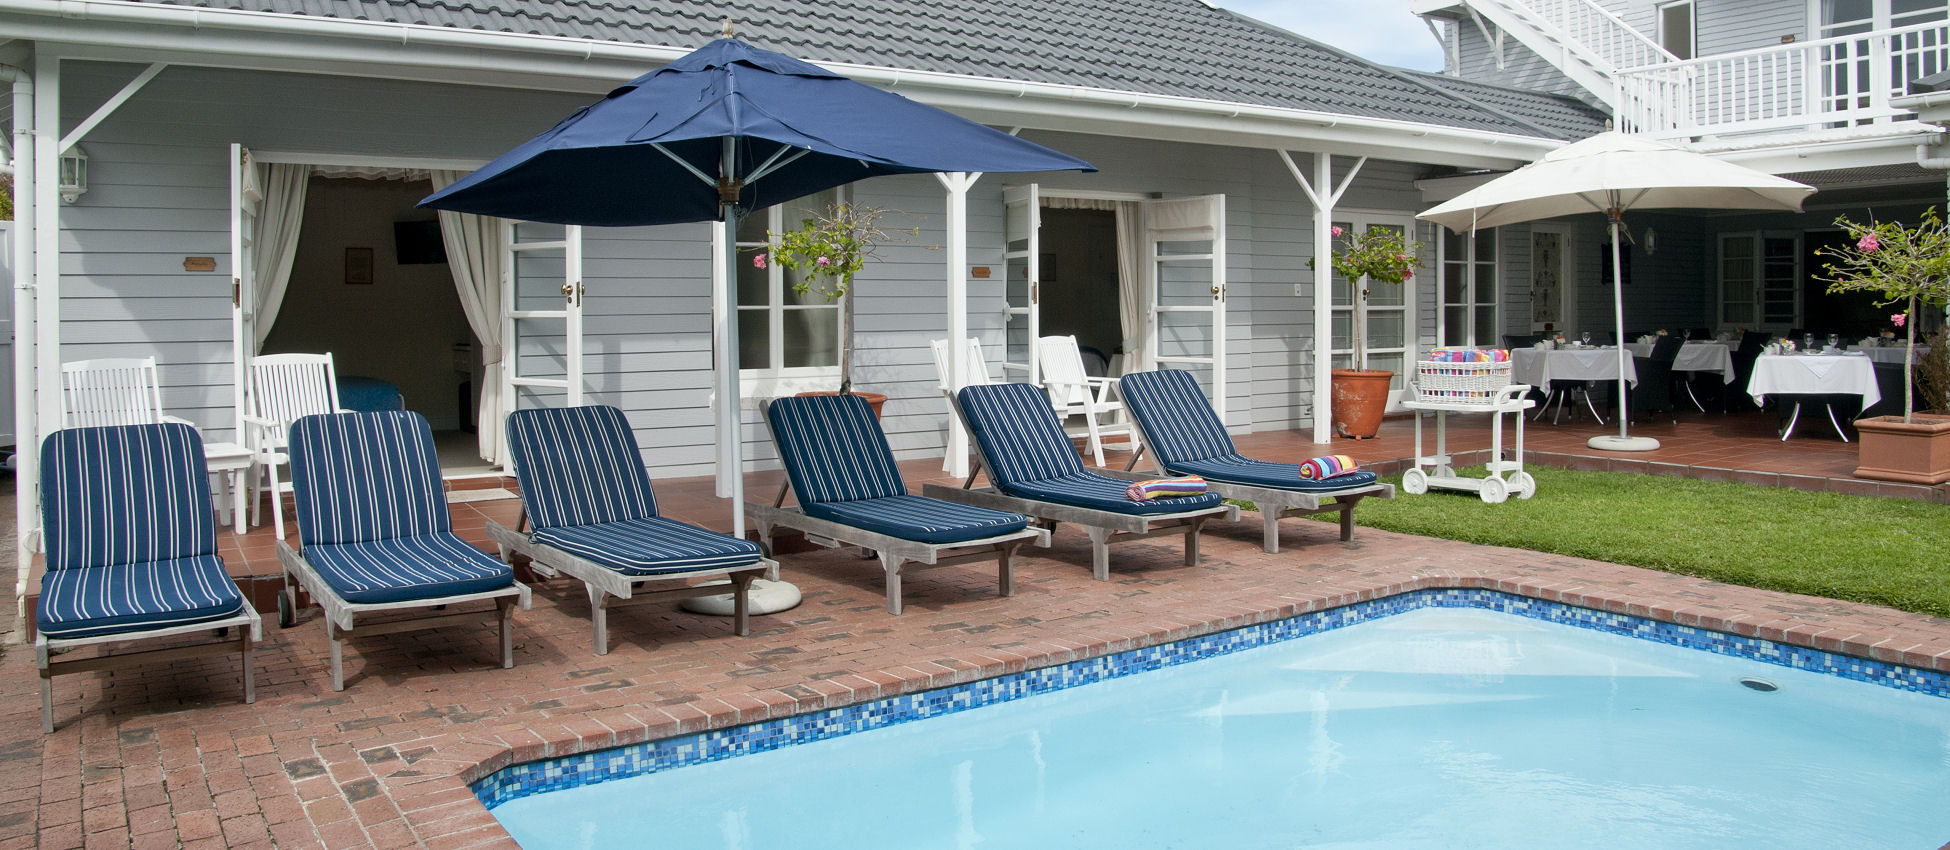 4 Star Accommodation Knysna